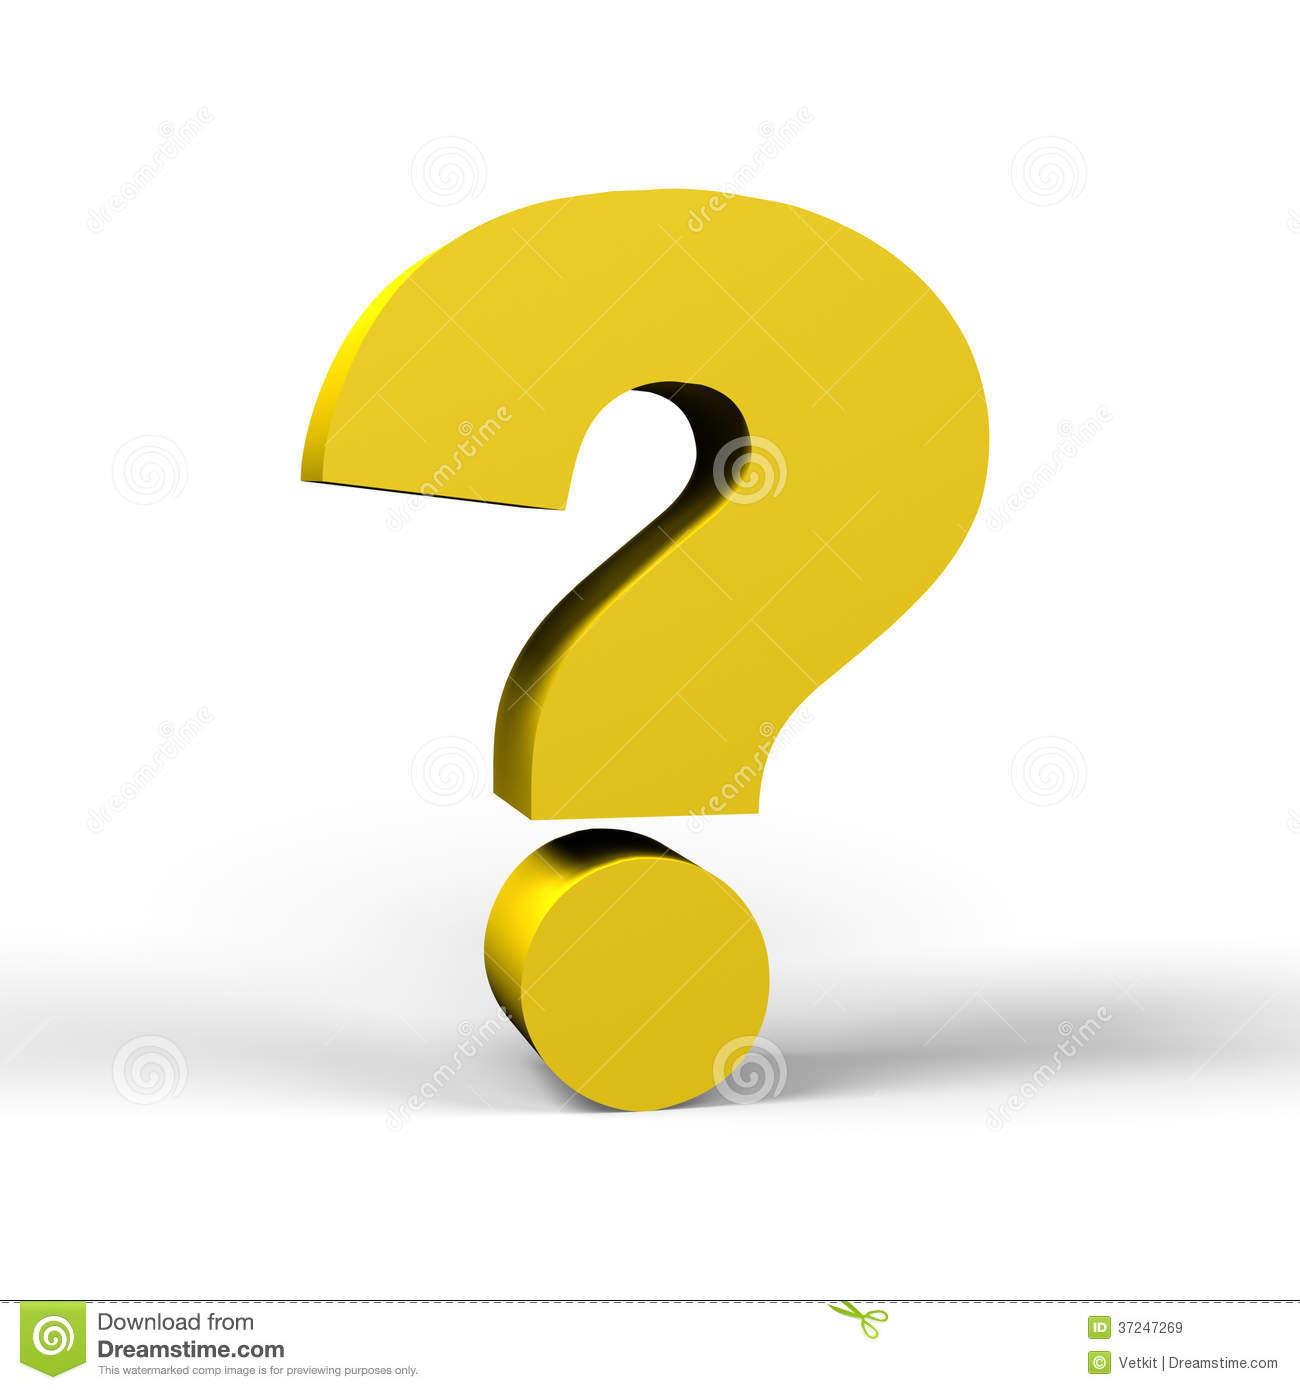 Gold Question Mark Royalty Free Stock Images - Image: 37247269